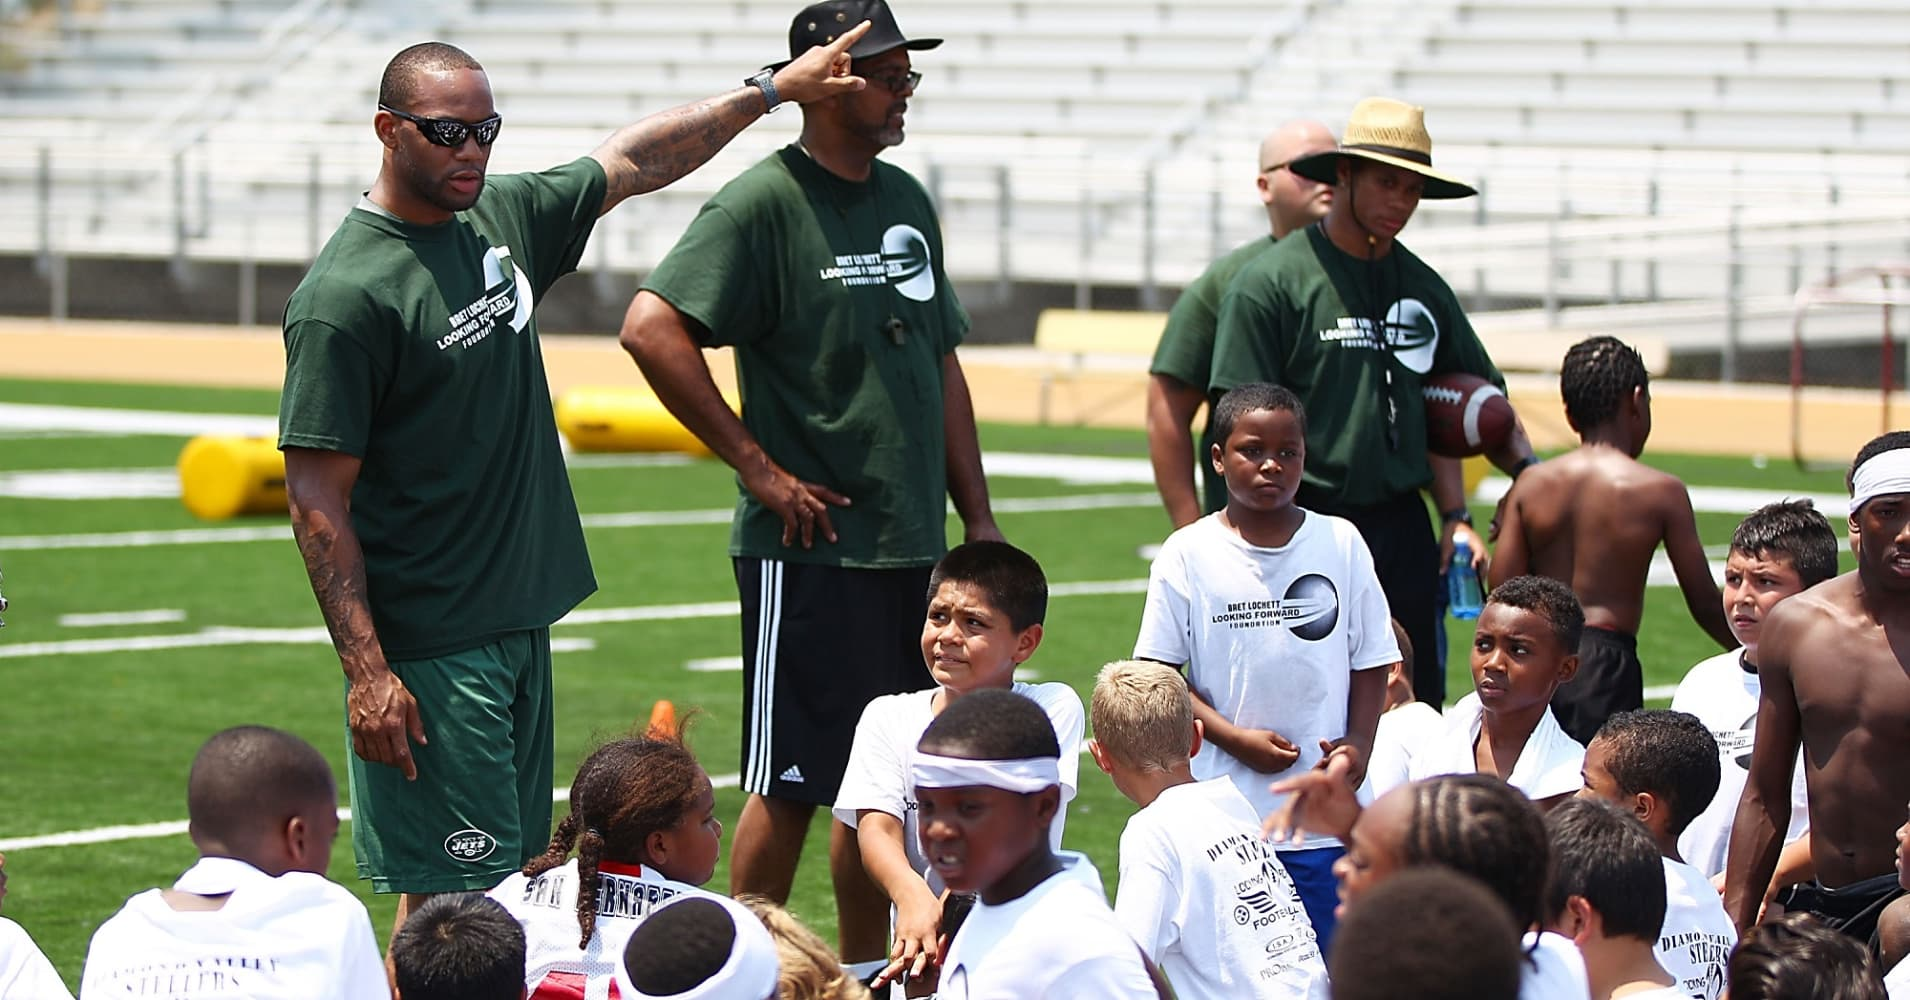 Former NFL New York Jets player Bret Lockett hosts a charity football camp at Diamond Bar High School